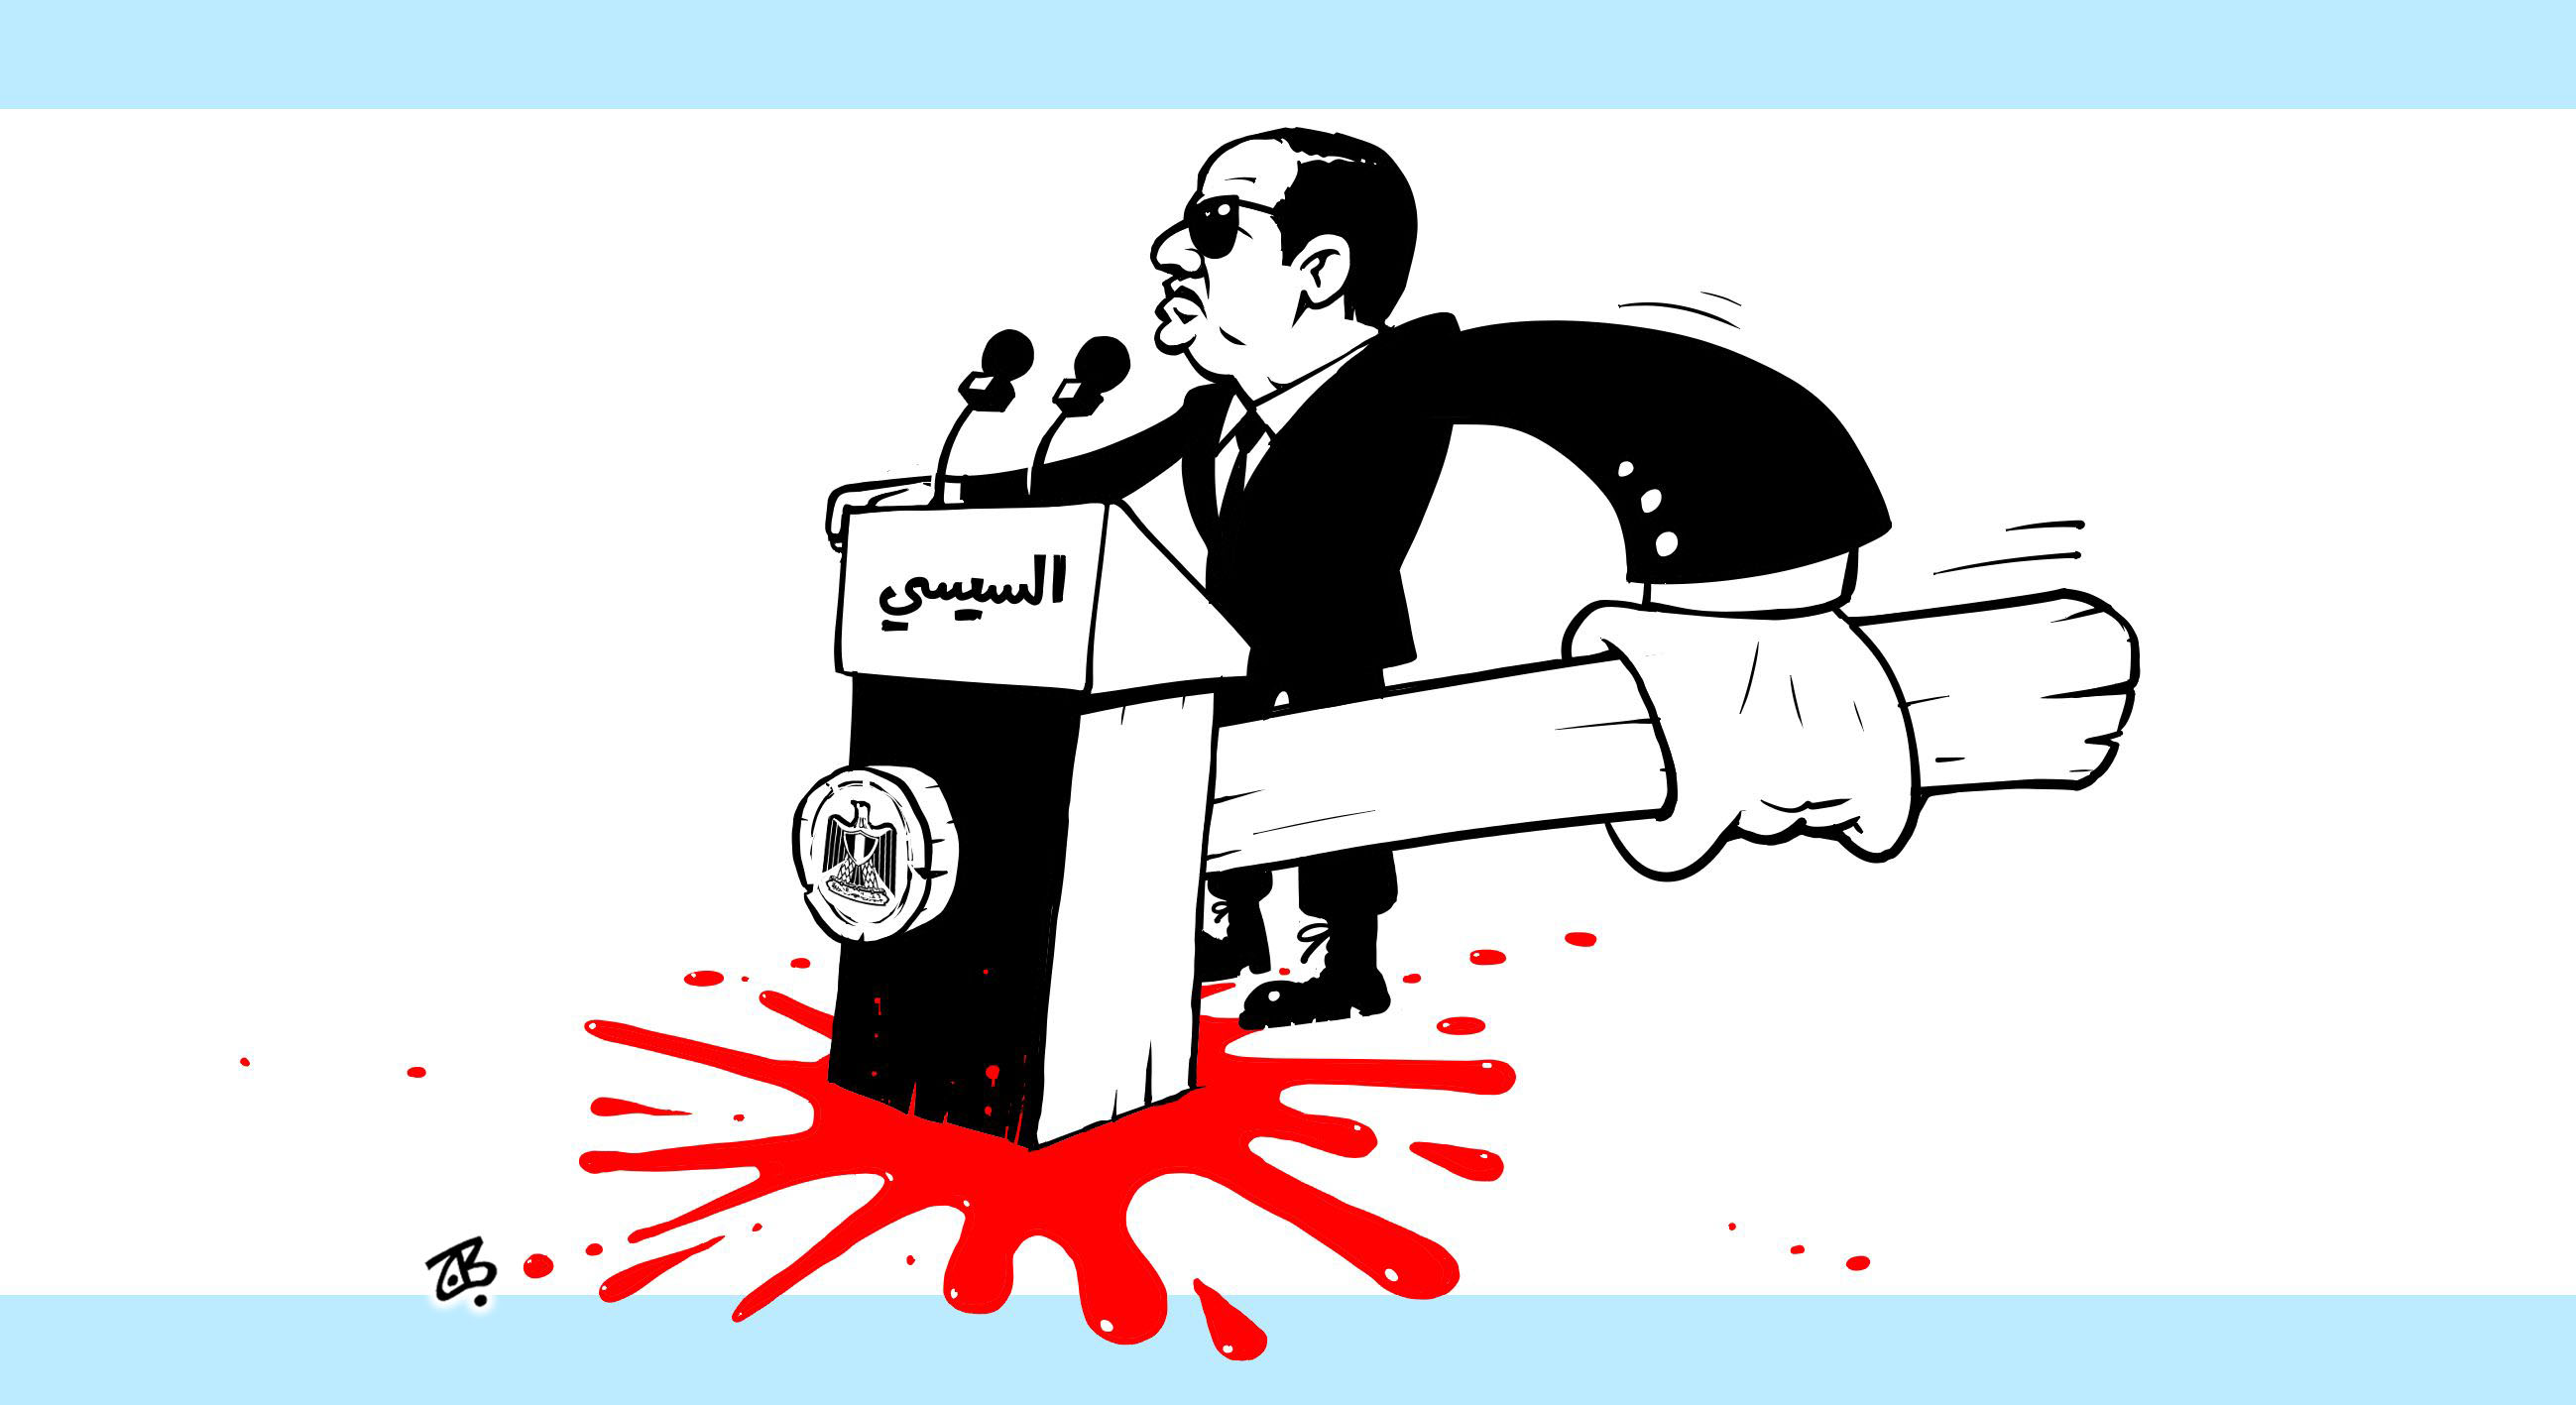 Sisi of Egypt speech hammer dictator blood 16-05-11